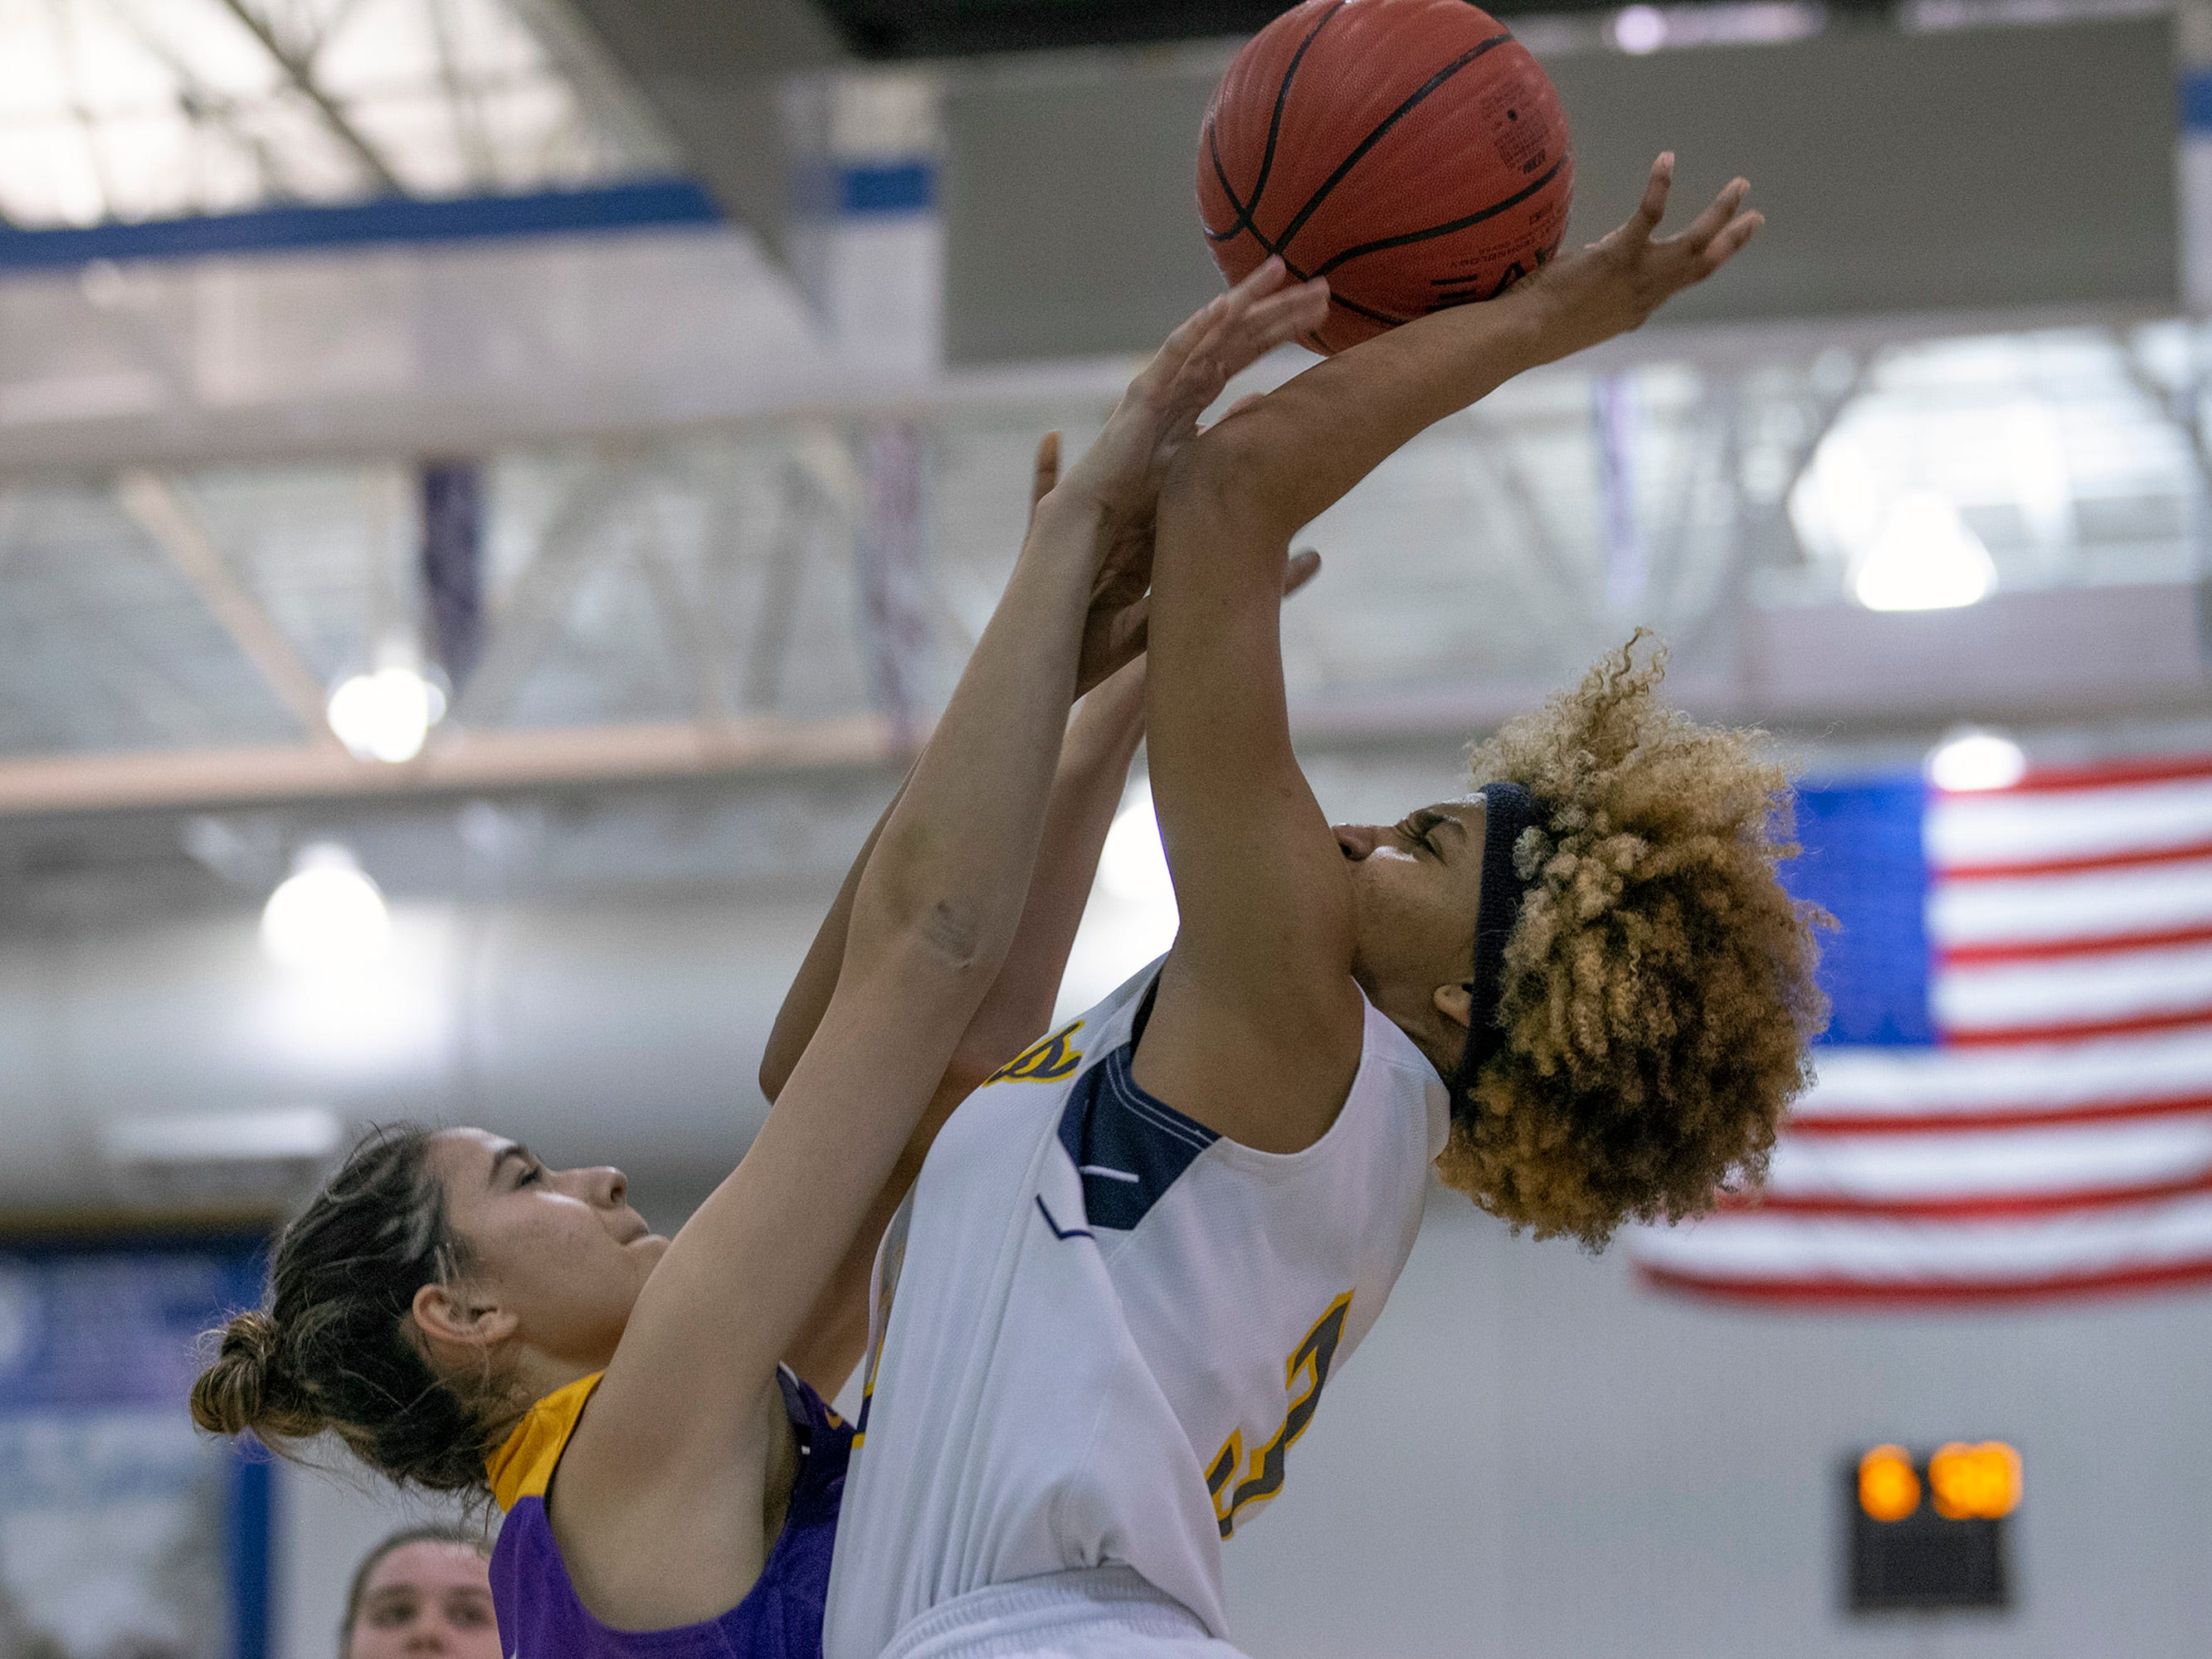 Samantha Mikos, St. Rose,  tries to block shot by Tiana Jackson, Franklin. St Rose Girls Basketball vs Franklin High School in NJSIAA Tournament of Champions Semifinal in Toms River on March 14, 2019.